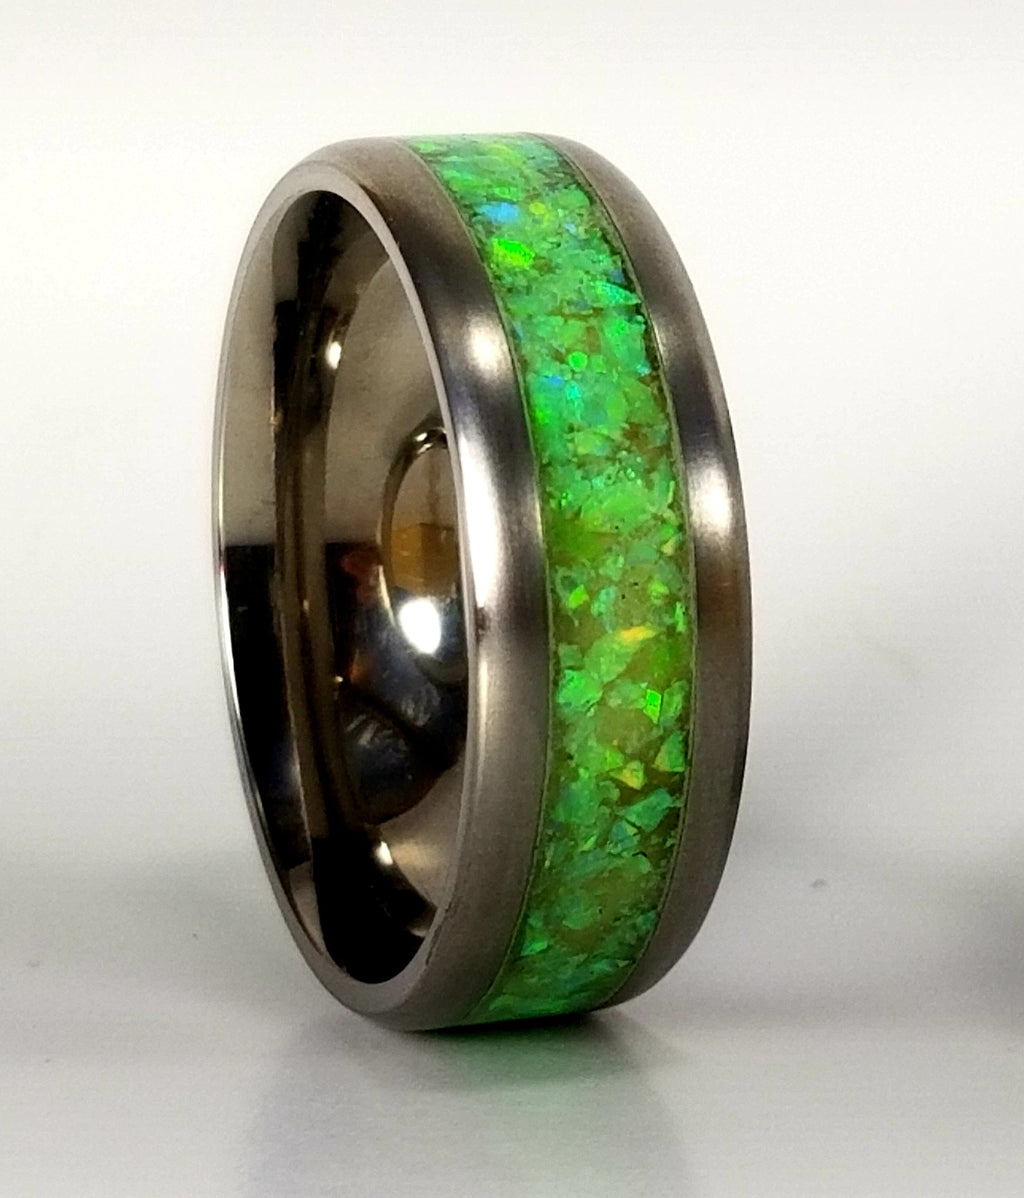 Green Flubber St. Patrick's Day Custom men's and women's titanium promise ring, wedding ring, glow ring, anniversary ring, opal ring. IPI Creations